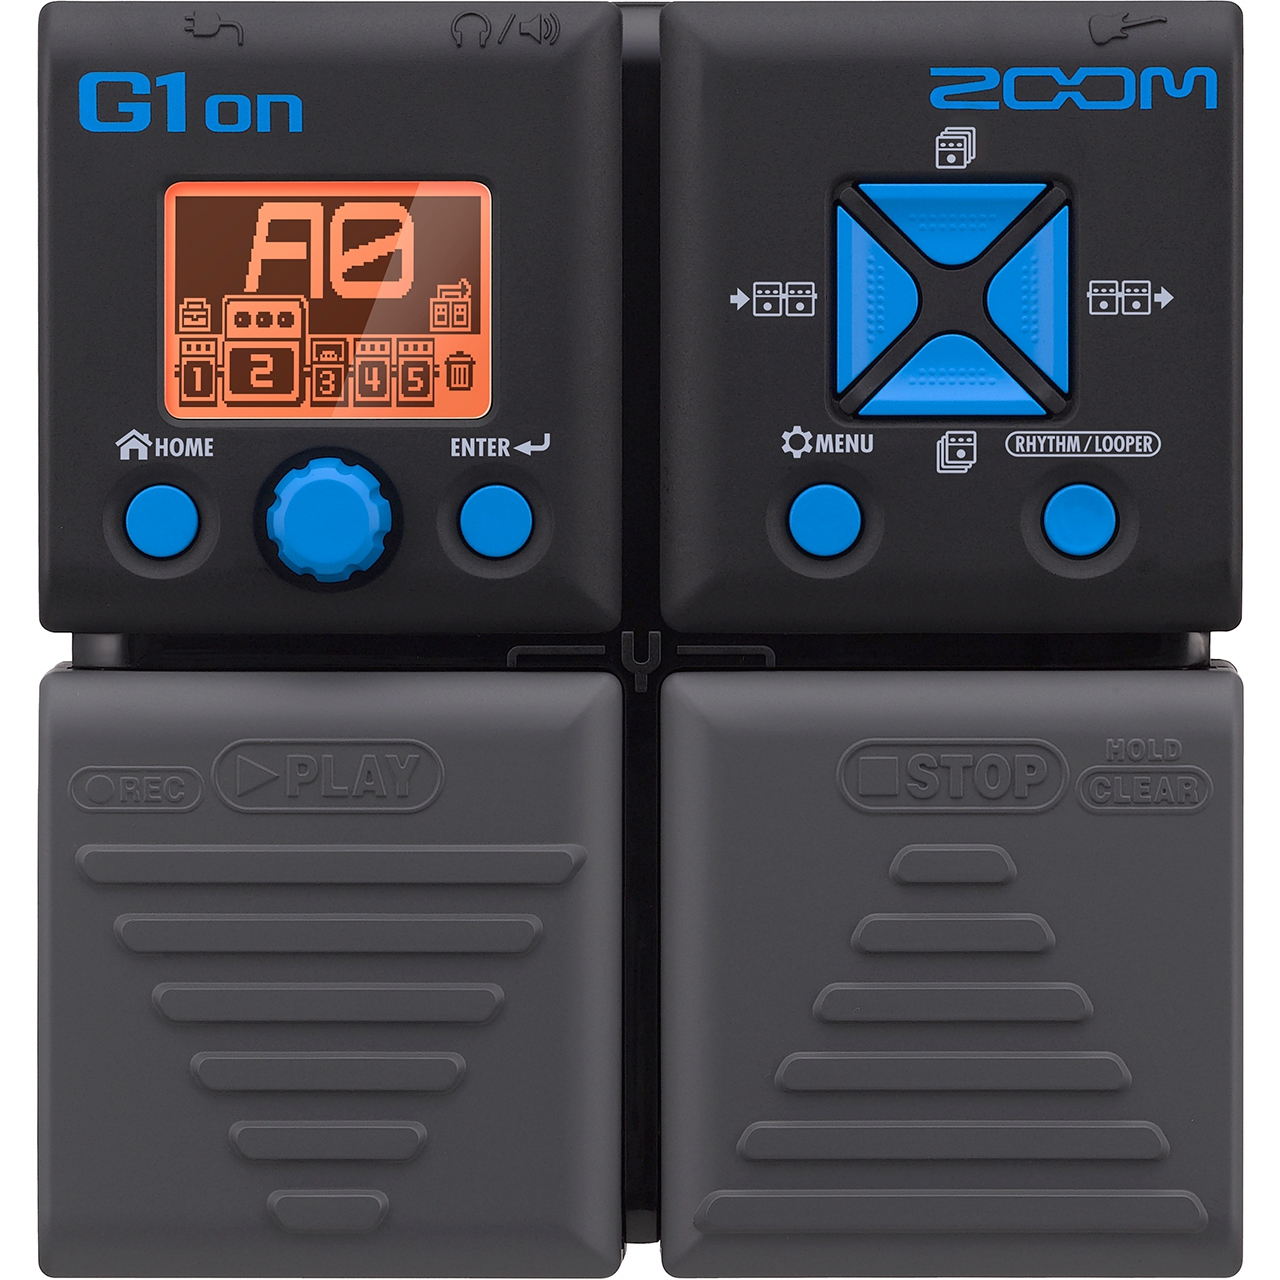 zoom g1on guitar effects effects processor. Black Bedroom Furniture Sets. Home Design Ideas